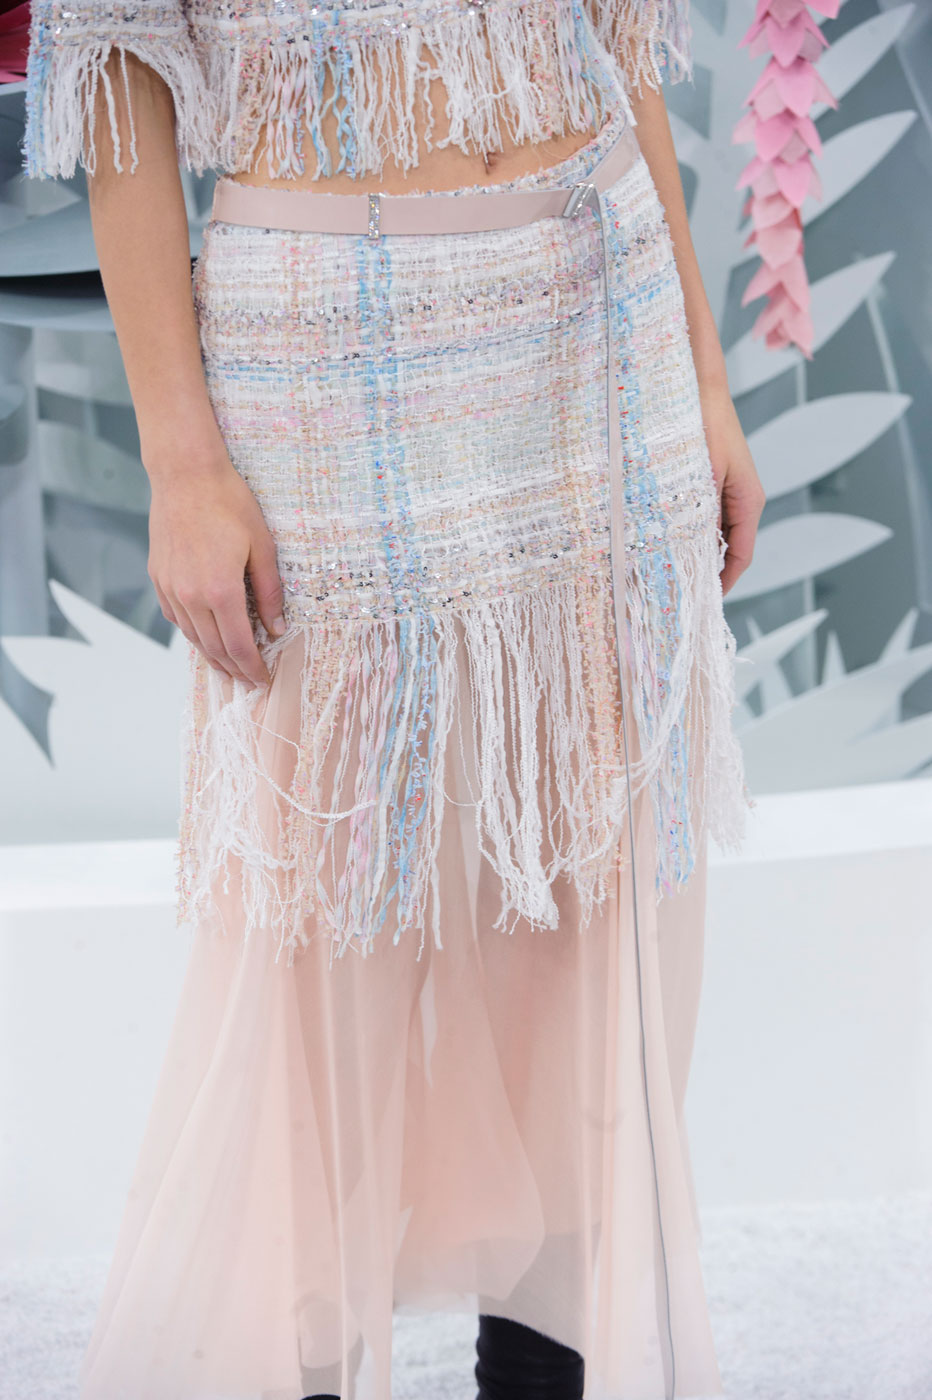 Chanel-fashion-runway-show-close-ups-haute-couture-paris-spring-summer-2015-the-impression-049